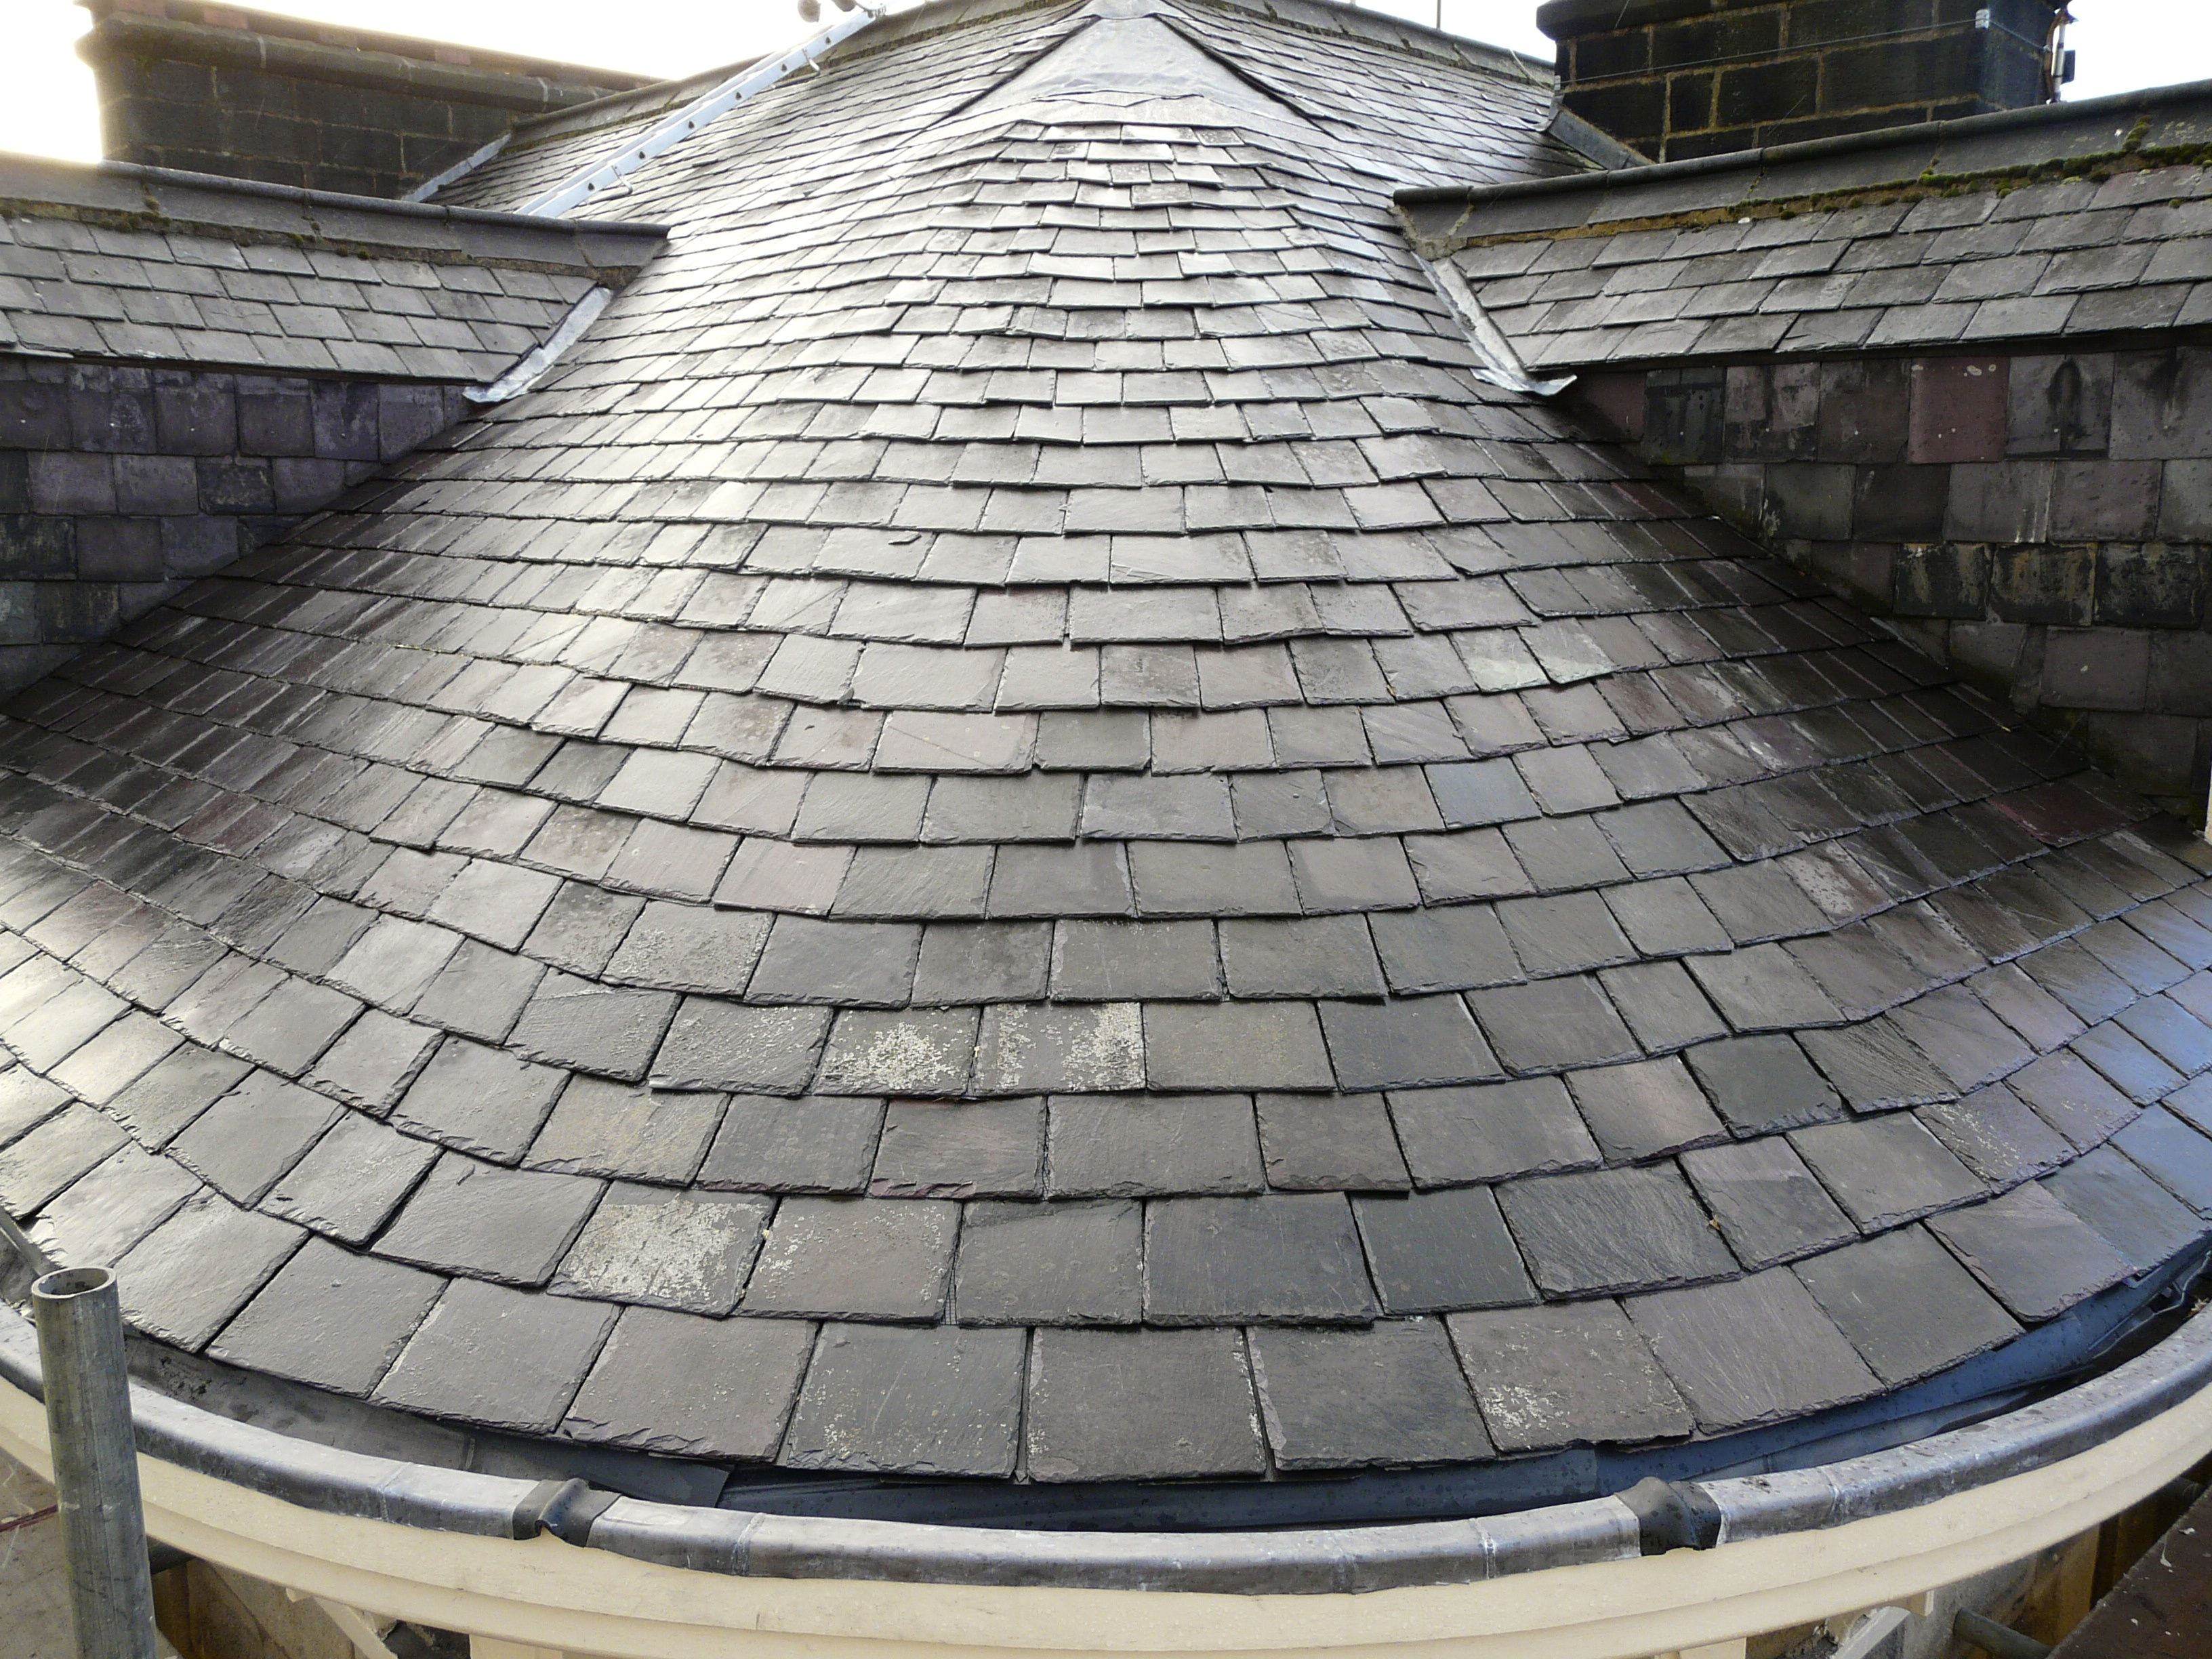 Curved Slate Roof Google Search Slate Roof Roof Repair Roofing